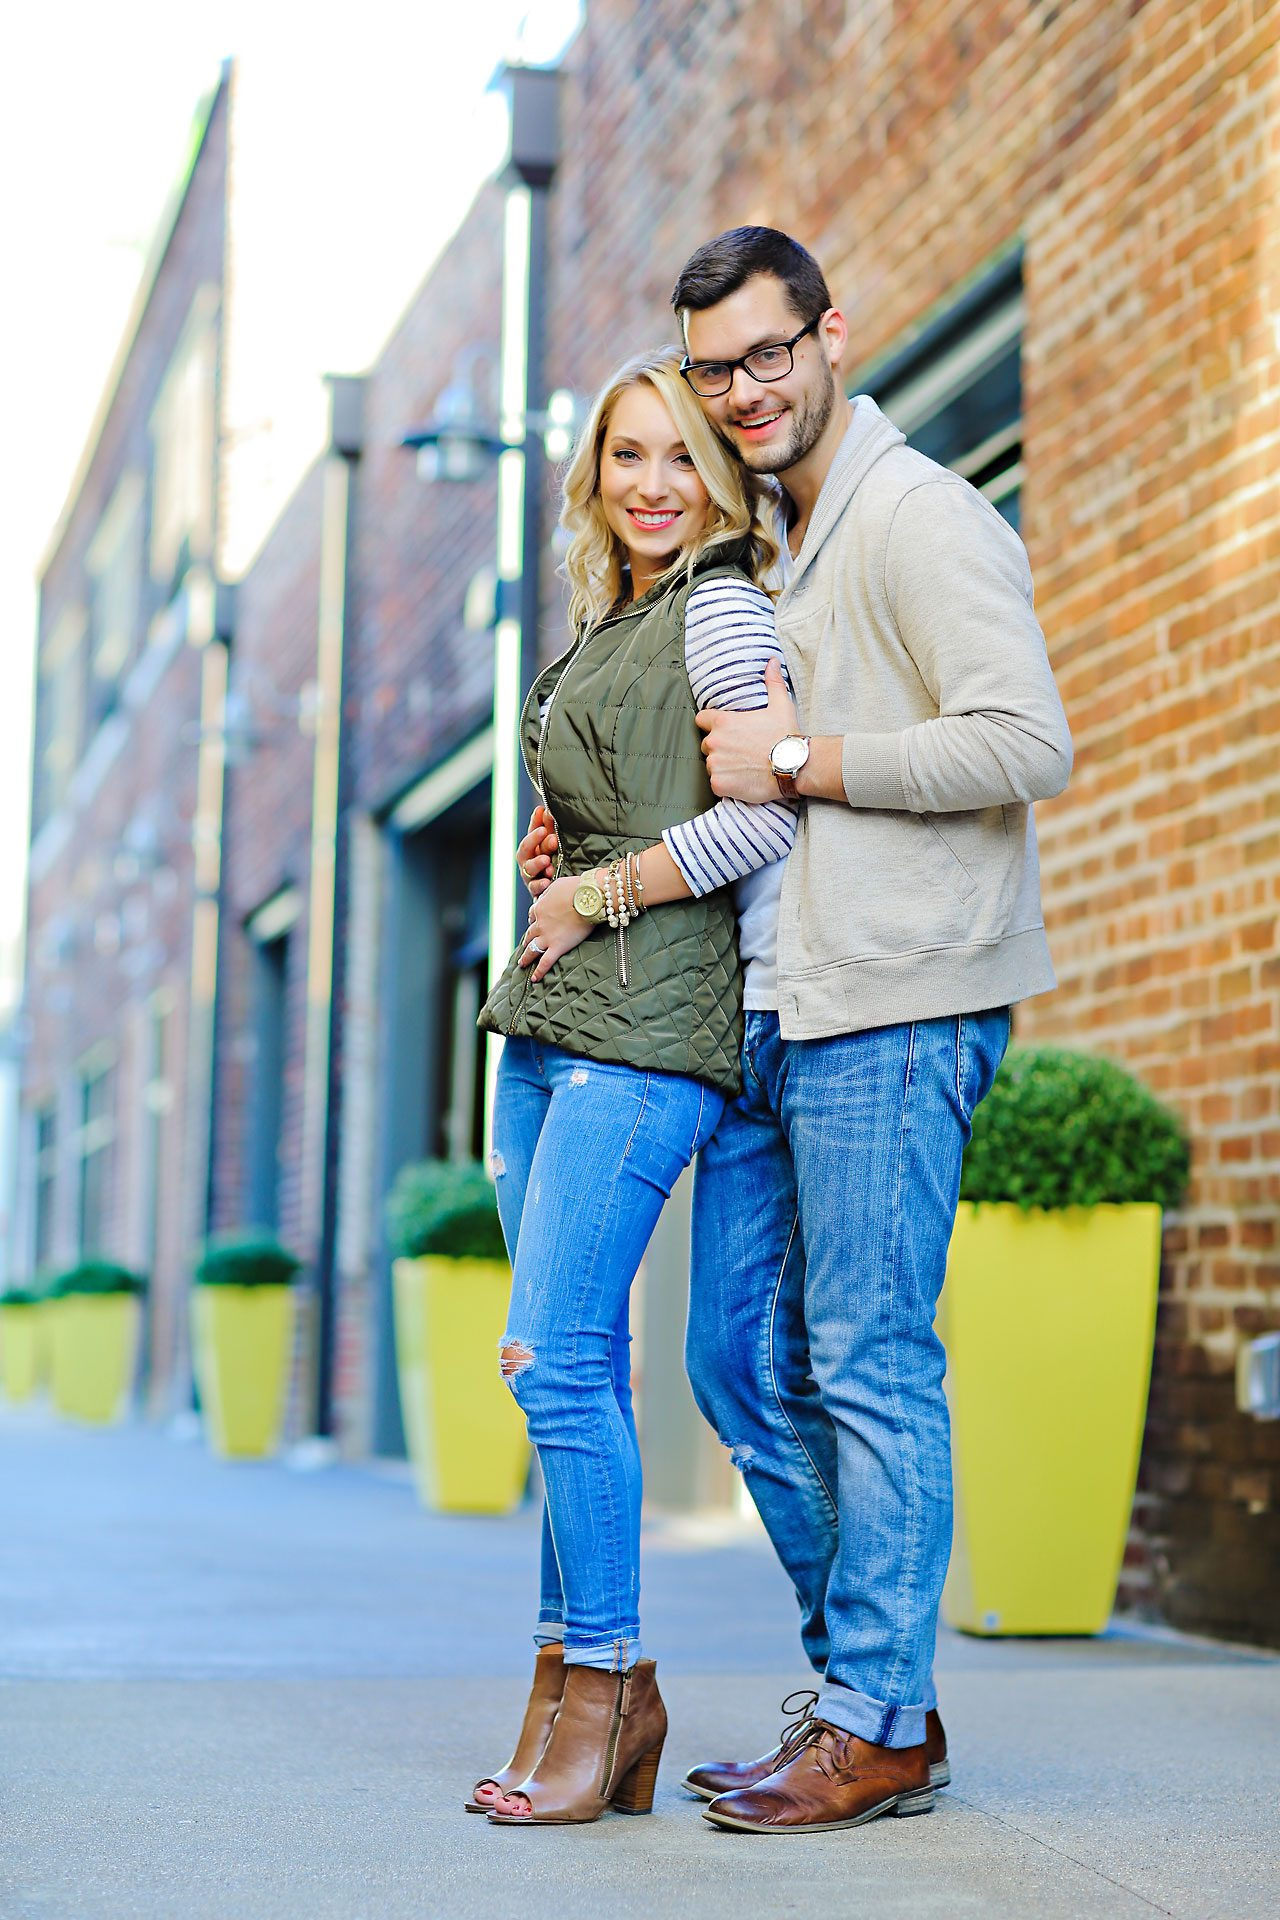 145 Meaghan Matt Indianapolis Engagement Photographer